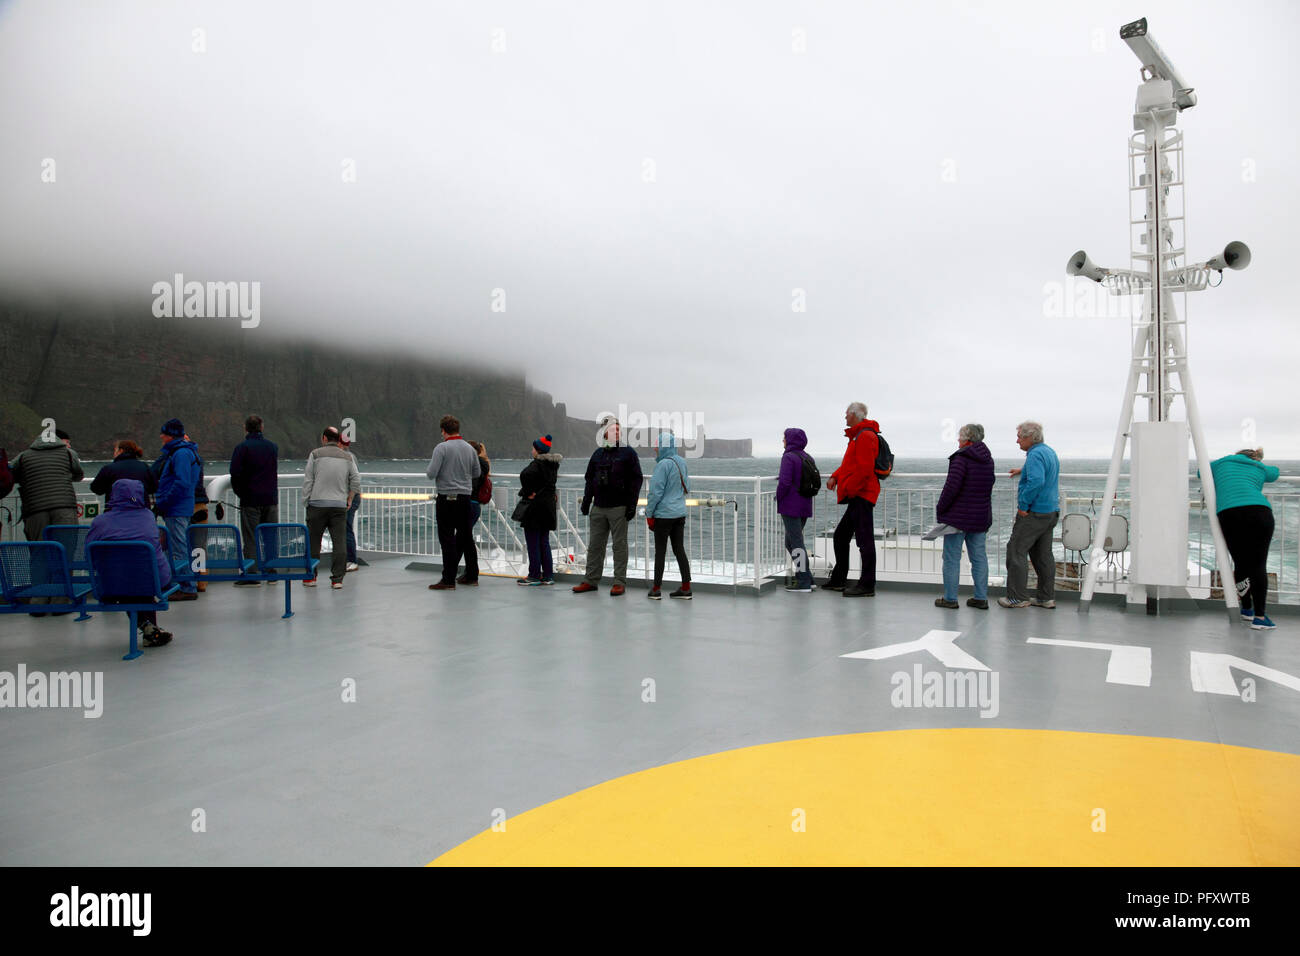 Passengers on the Northlink ferry from Scrabster to Stromness with the Old Man of Hoy, Orkney in the background - Stock Image